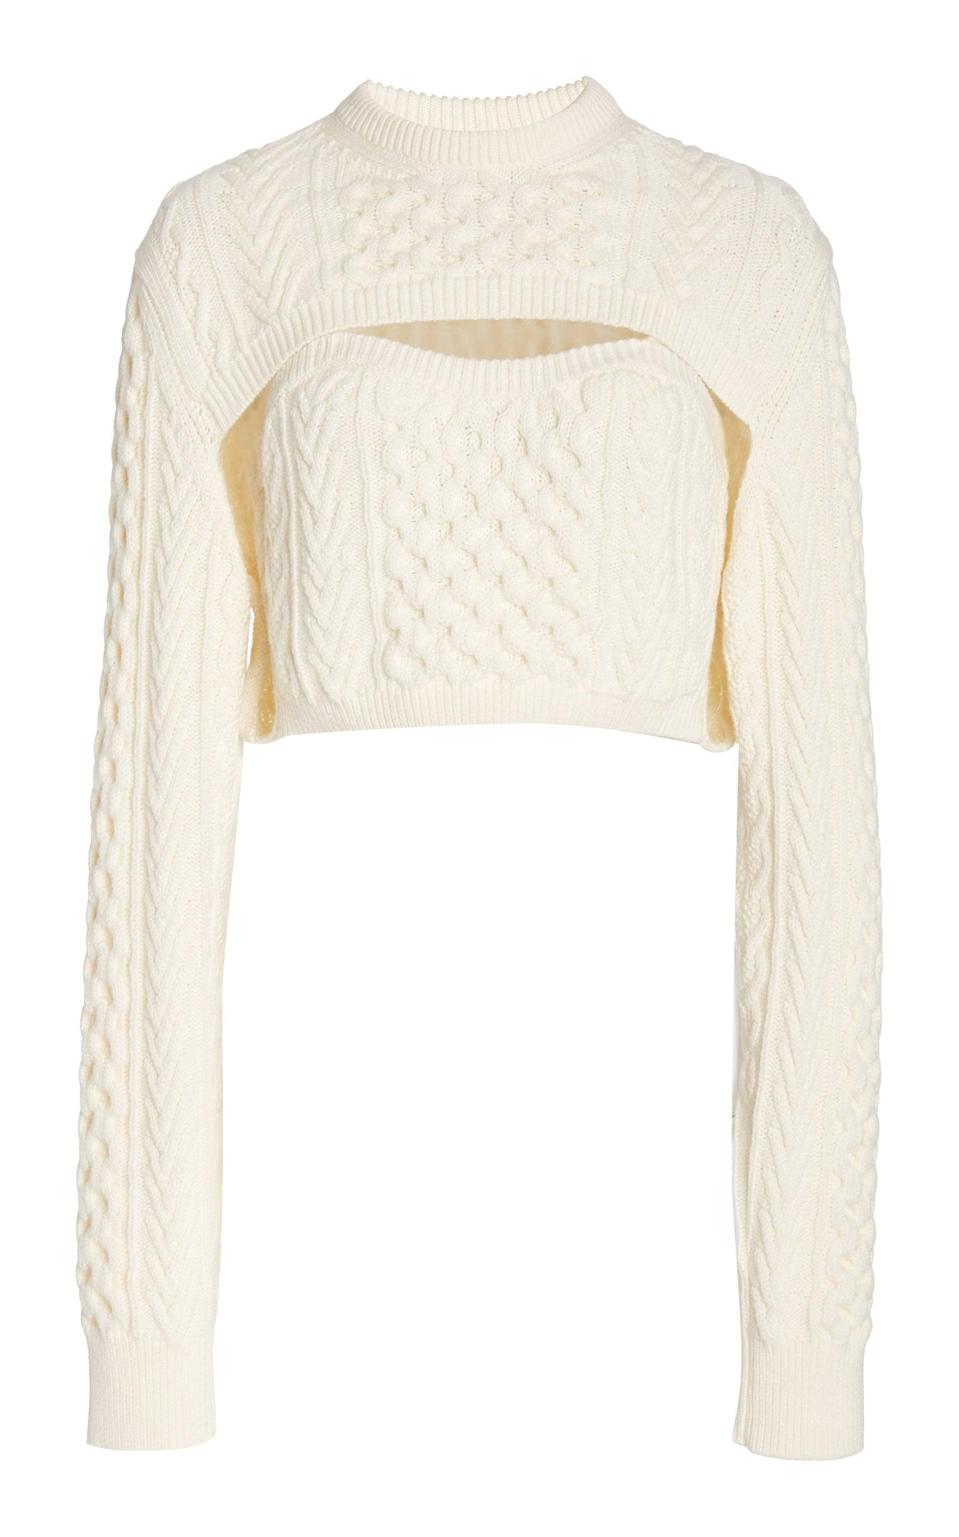 "<p>""This <span>Rosie Assoulin Thousand-in-One-Ways Wool-Cotton Sweater</span> ($750) is currently at the top of my wish list. It can be worn so many ways, I'd reach for it every single day and find a new way to style it."" - IY</p>"